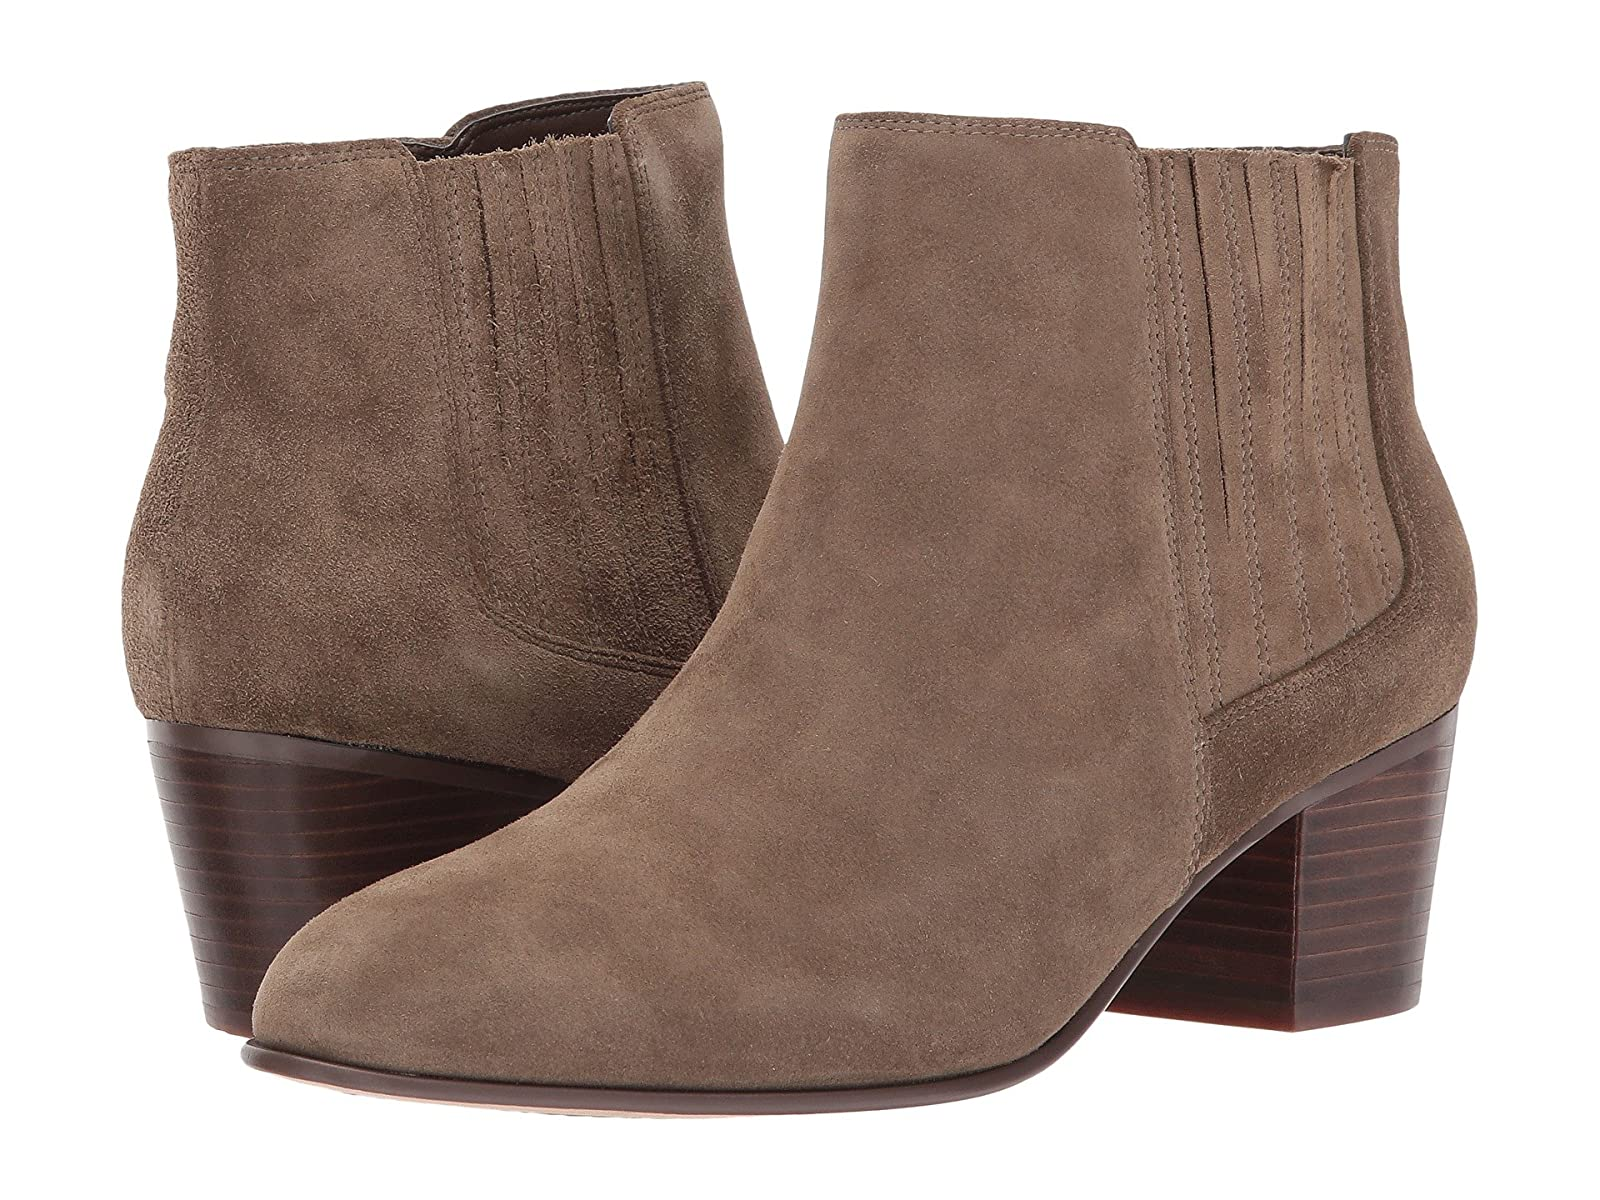 Clarks Maypearl TulsaCheap and distinctive eye-catching shoes